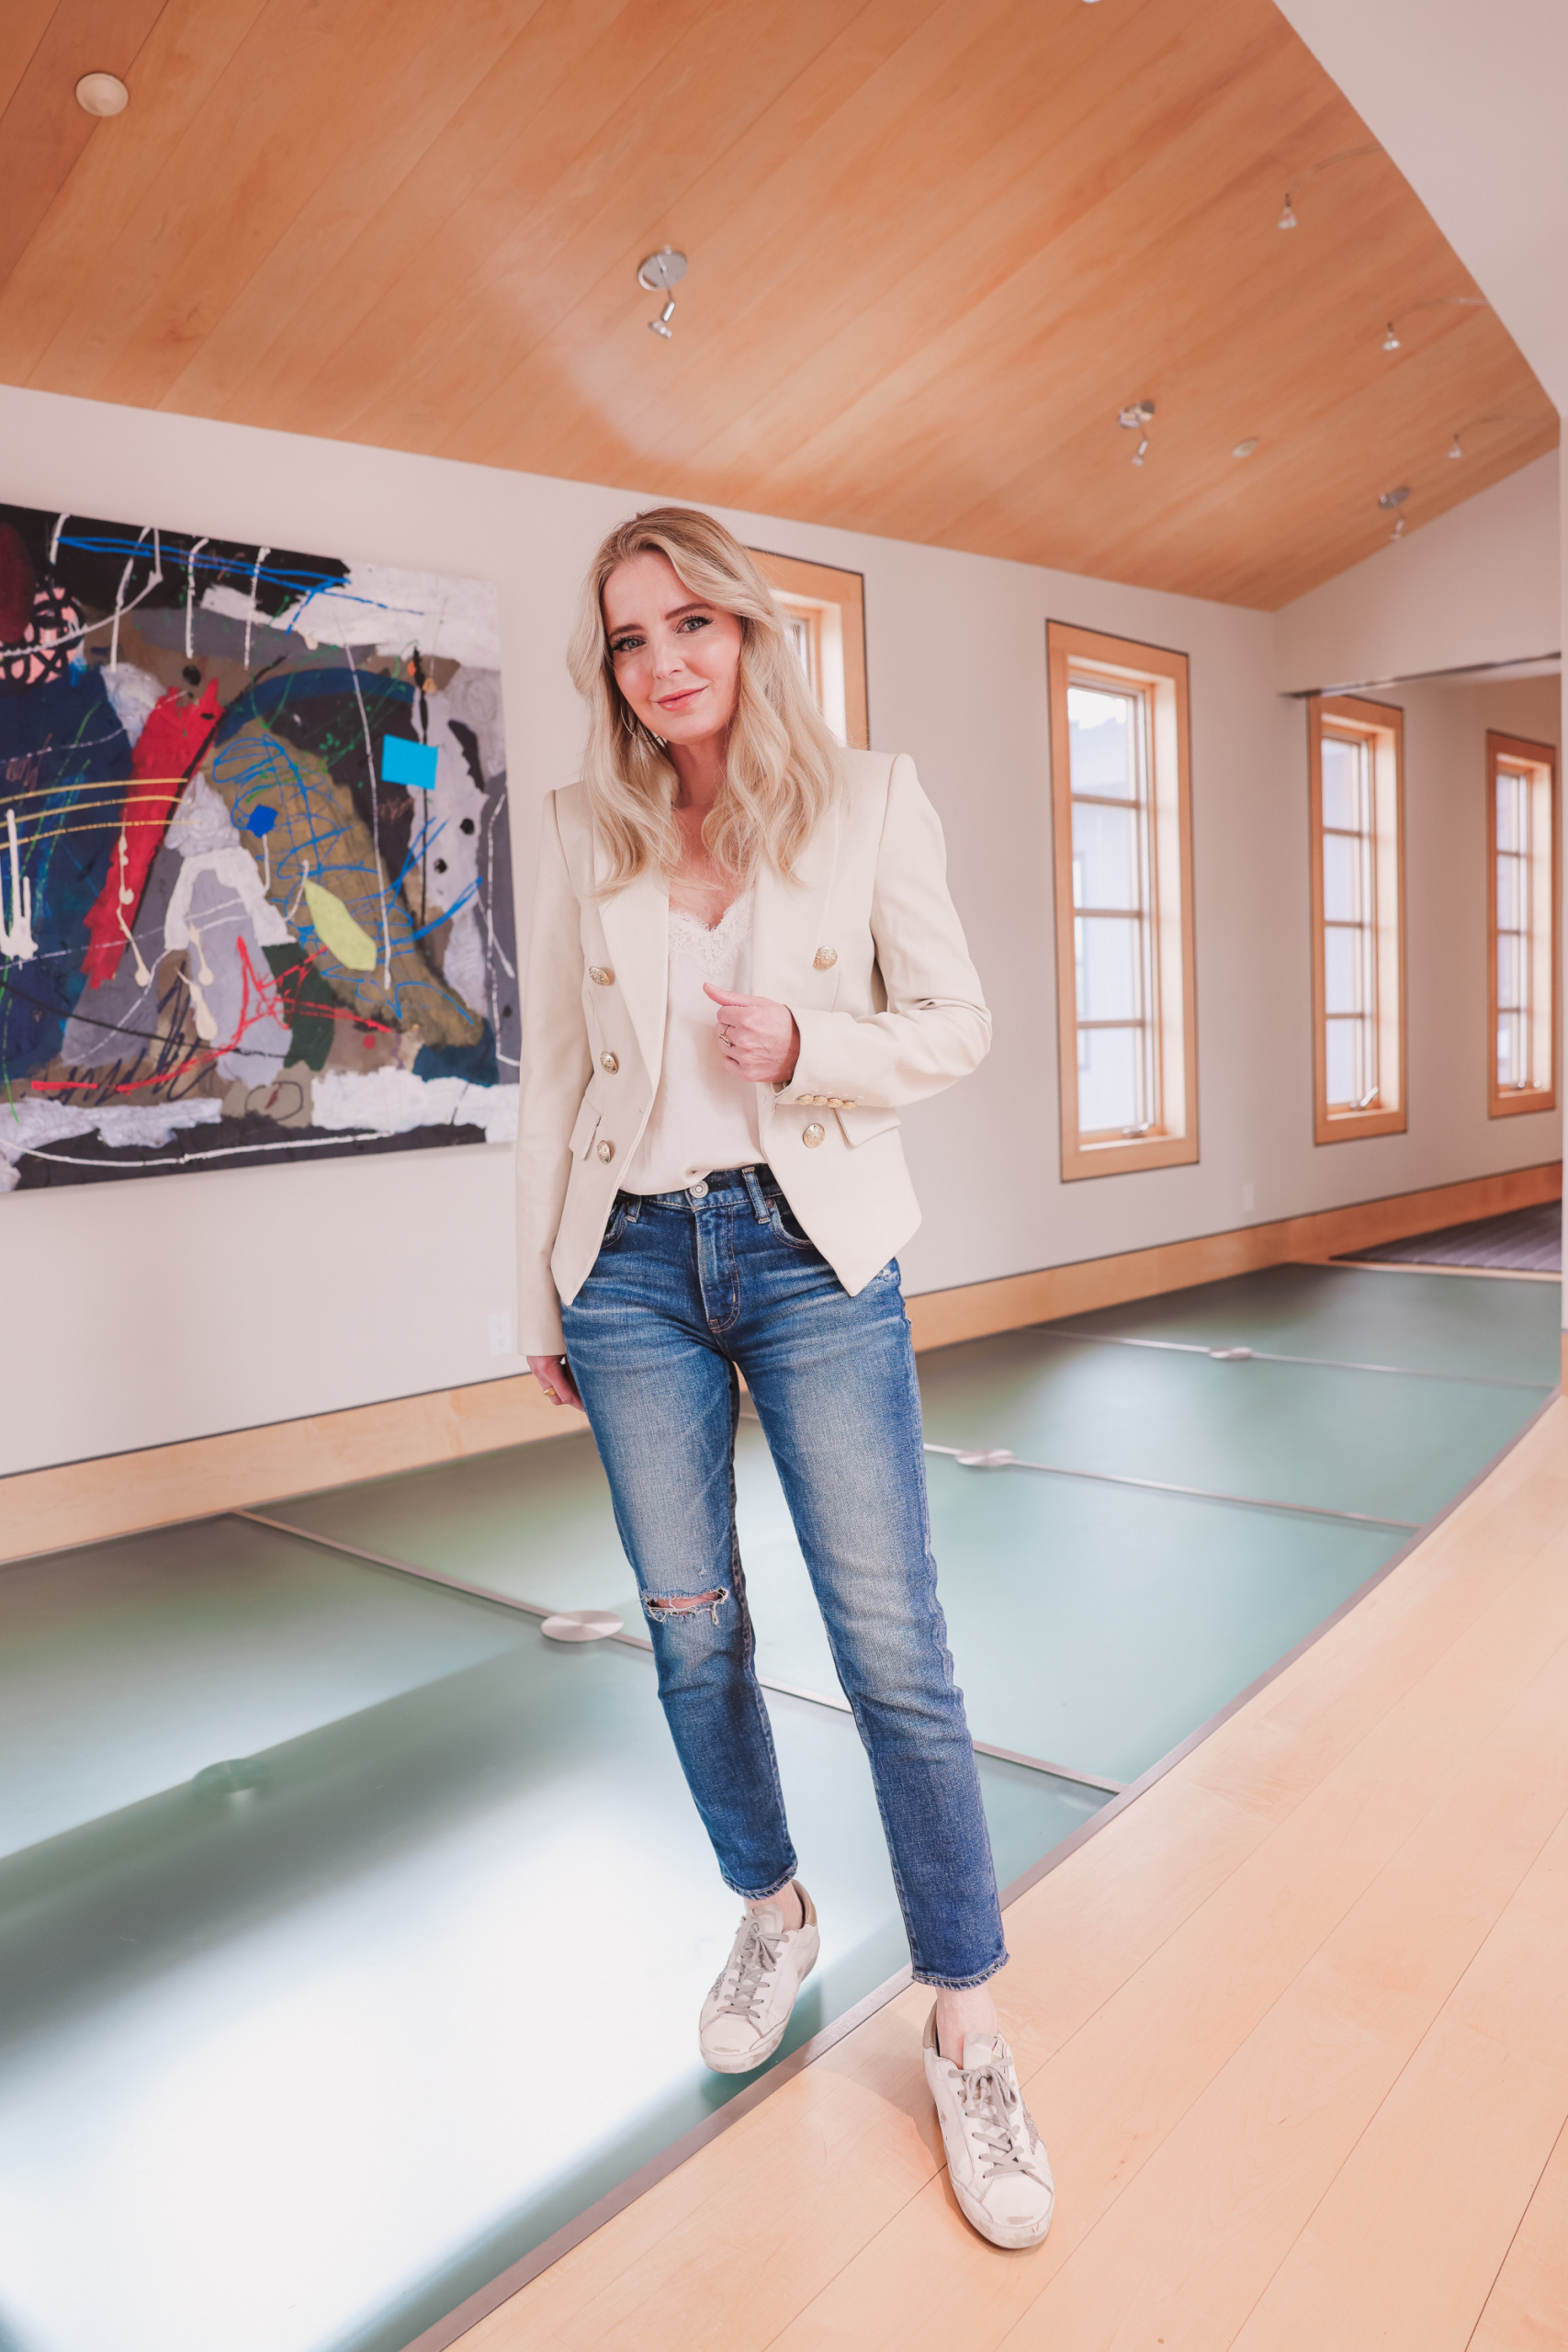 creating the perfect outfit featuring a leather blazer by Veronica Beard, moussy vintage tapered jeans and a camisole on fashion over 40 blogger Erin Busbee